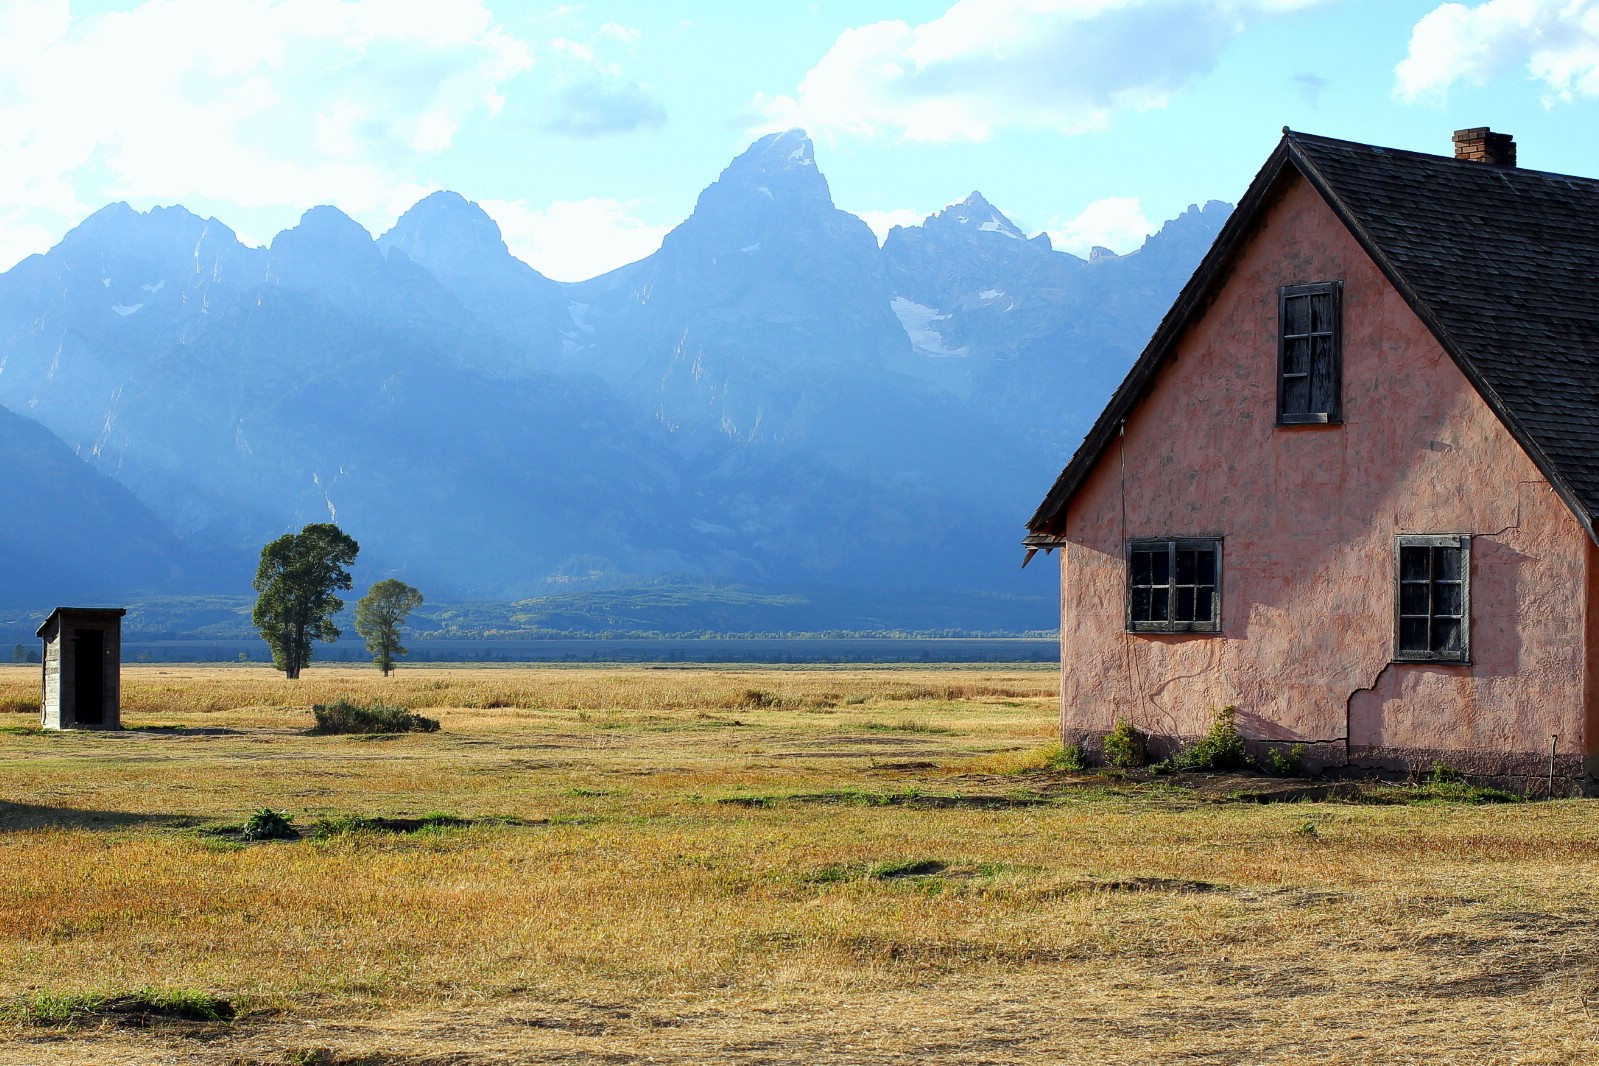 Buildings on Mormon Row in Grand Teton National Park, Wyoming, USA. September 5, 2016.